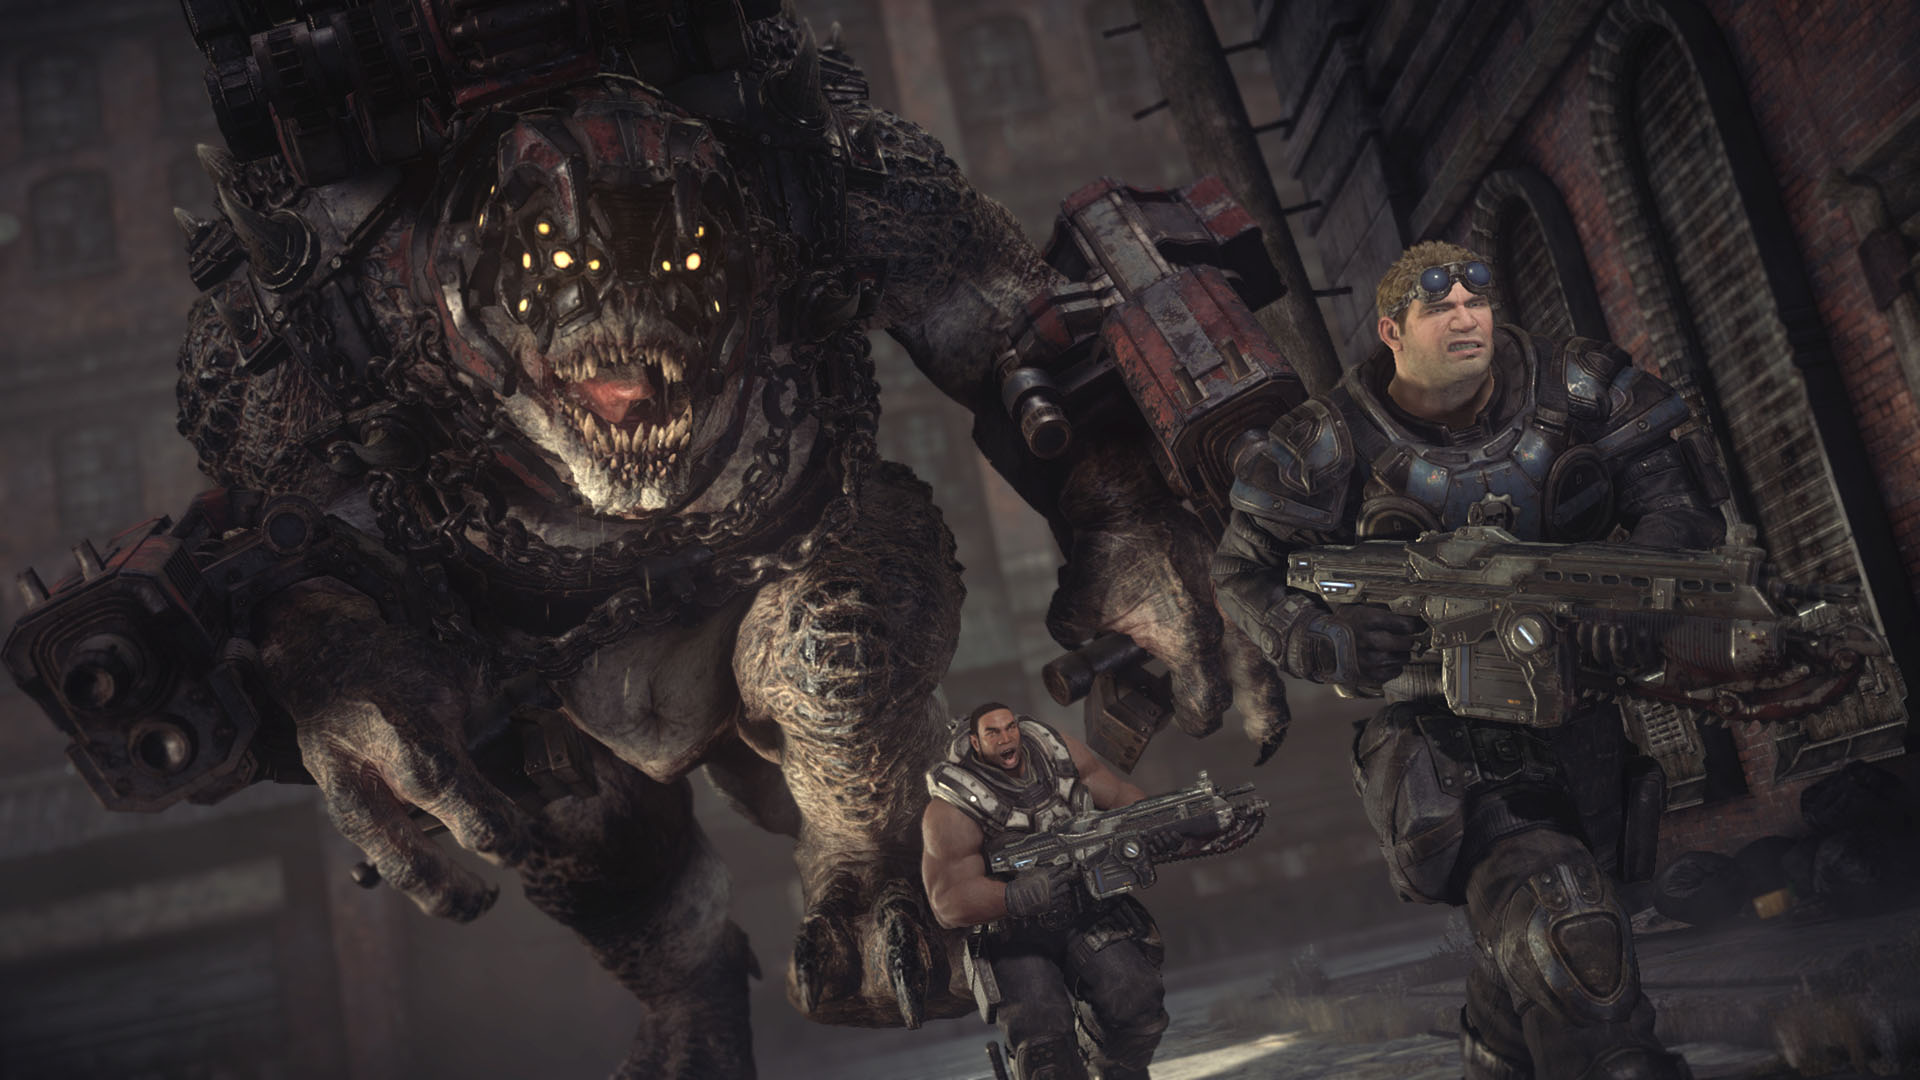 Gears of War Ultimate Edition will come to PC after Xbox One